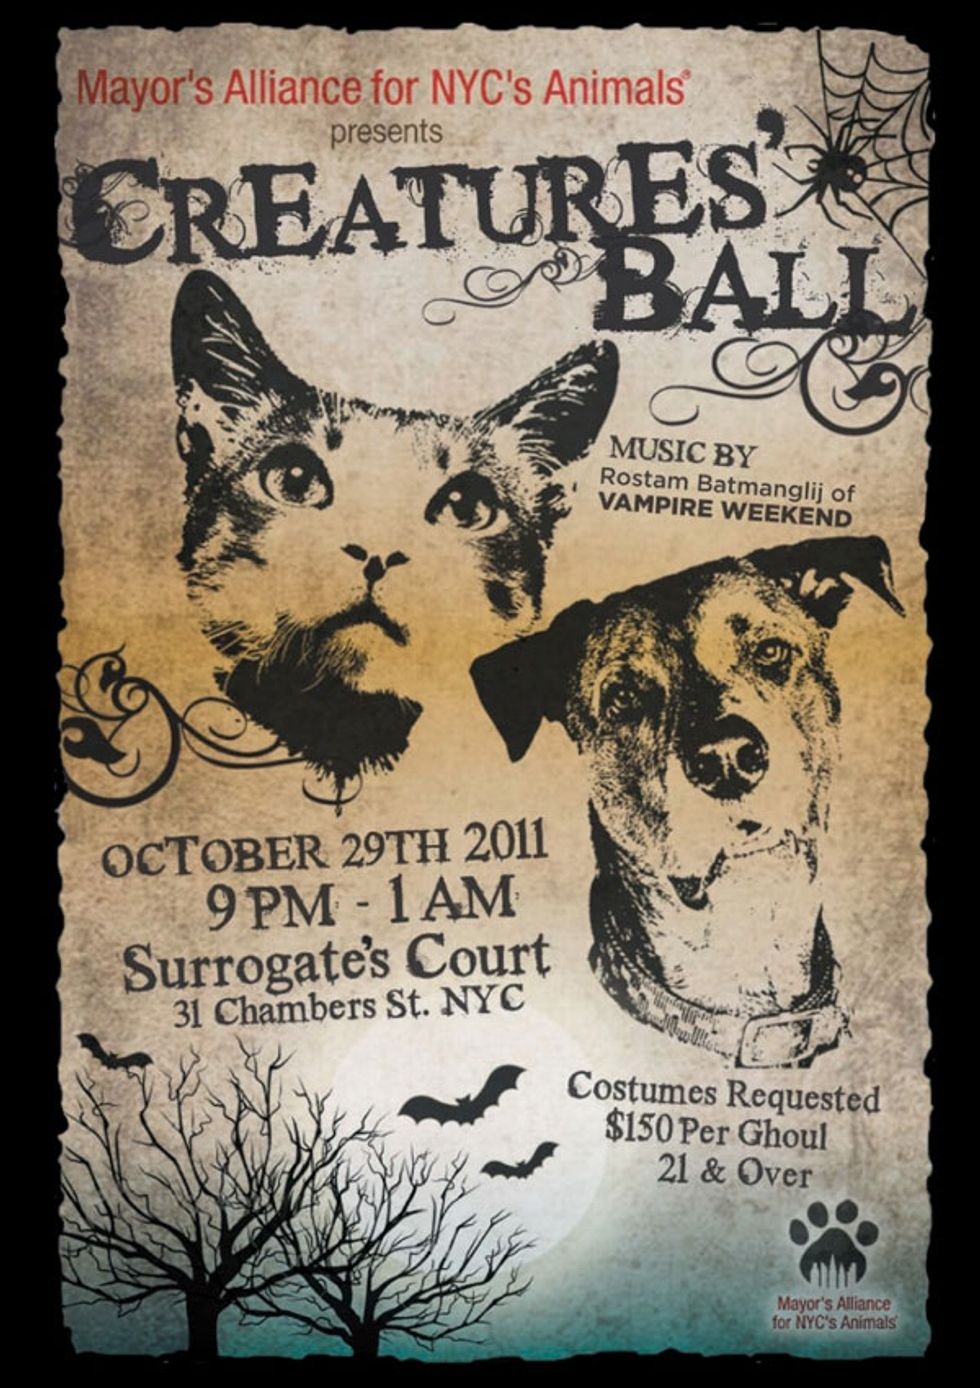 The Mayor's Alliance for NYC's Animals Presents the Creatures Ball!